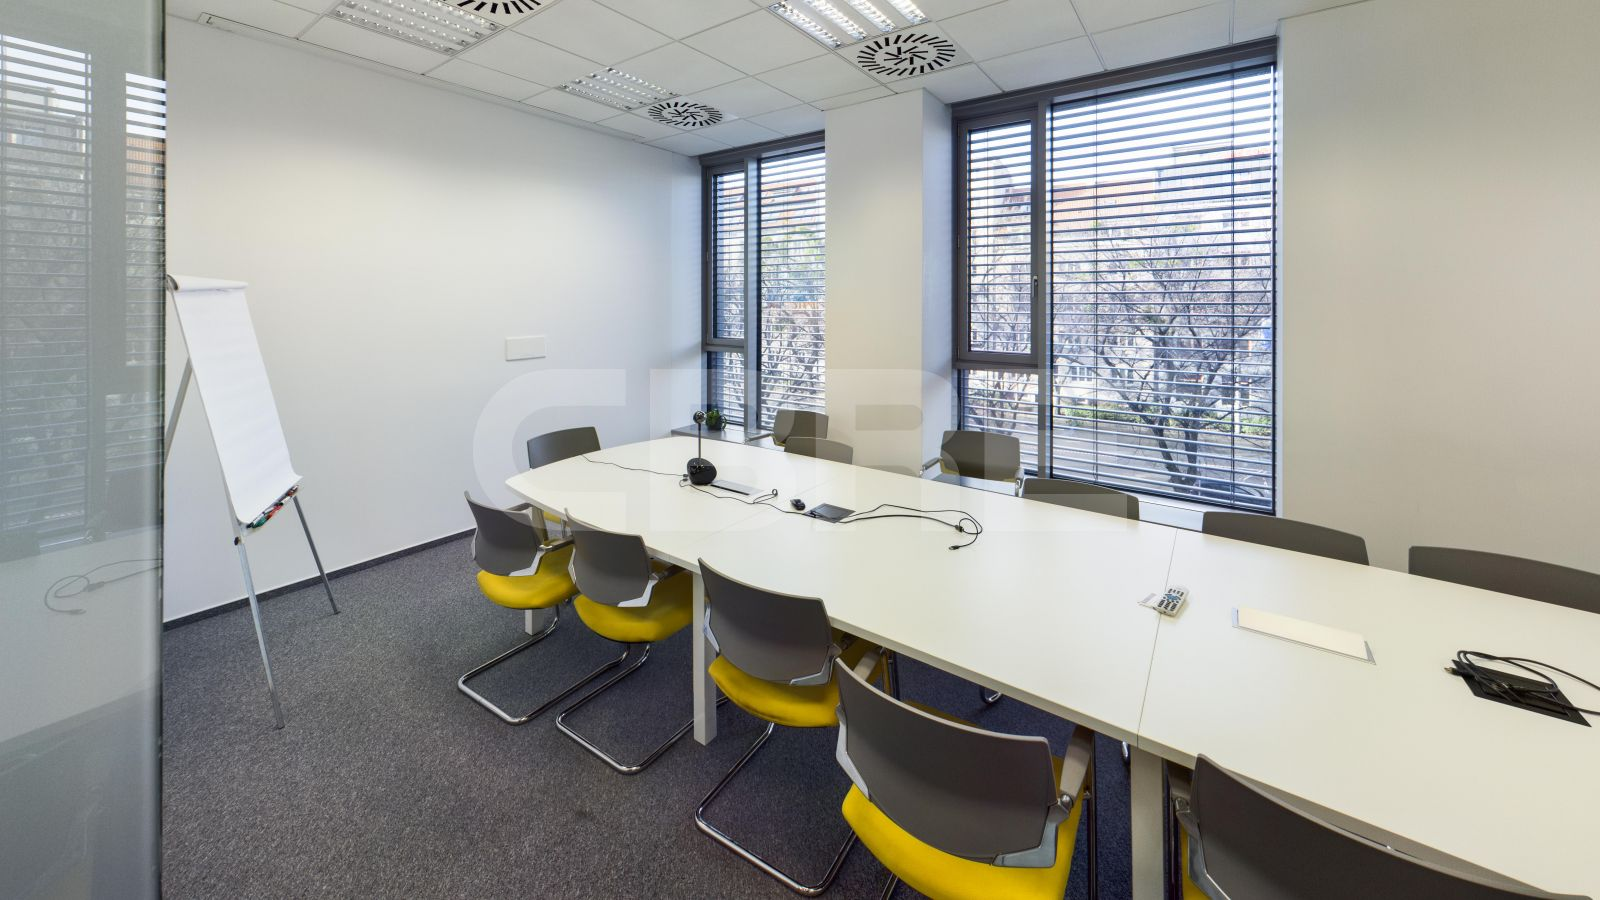 Twin City - A - Sublease, Bratislava - Staré Mesto | Offices for rent by CBRE | 4